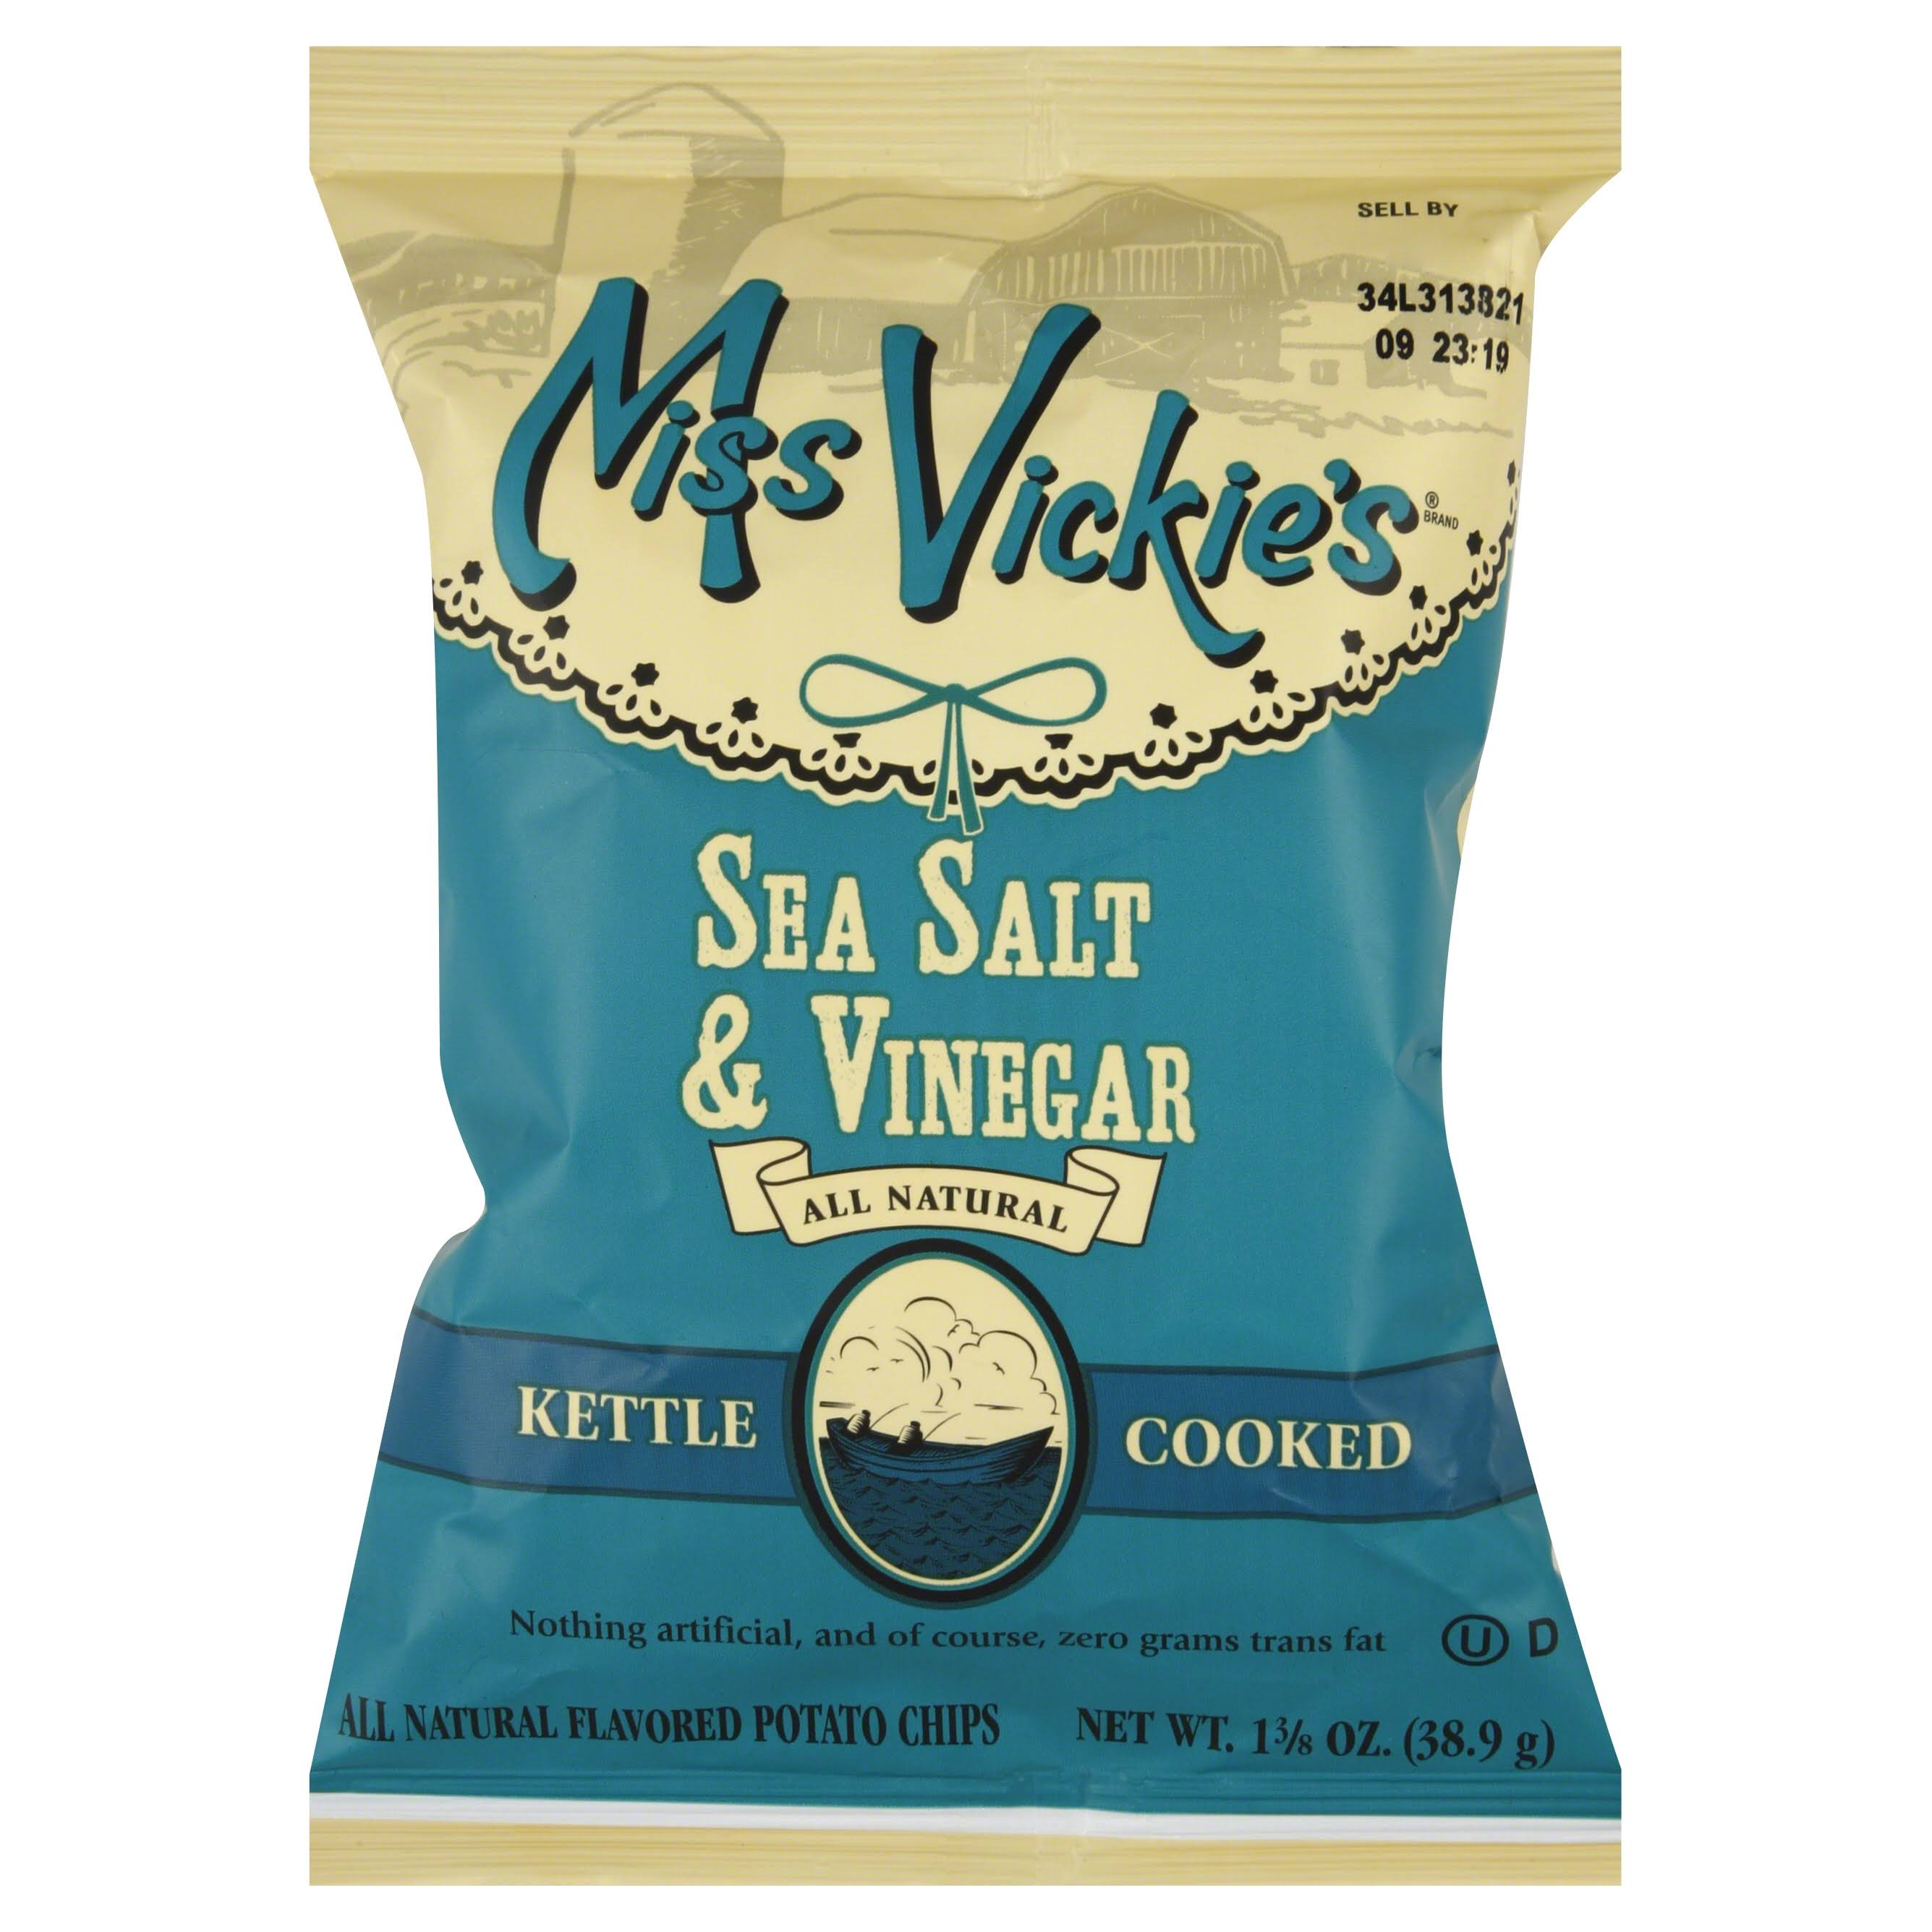 Miss Vickie's Kettle Cooked Potato Chips - Sea Salt & Vinegar, 1.375oz